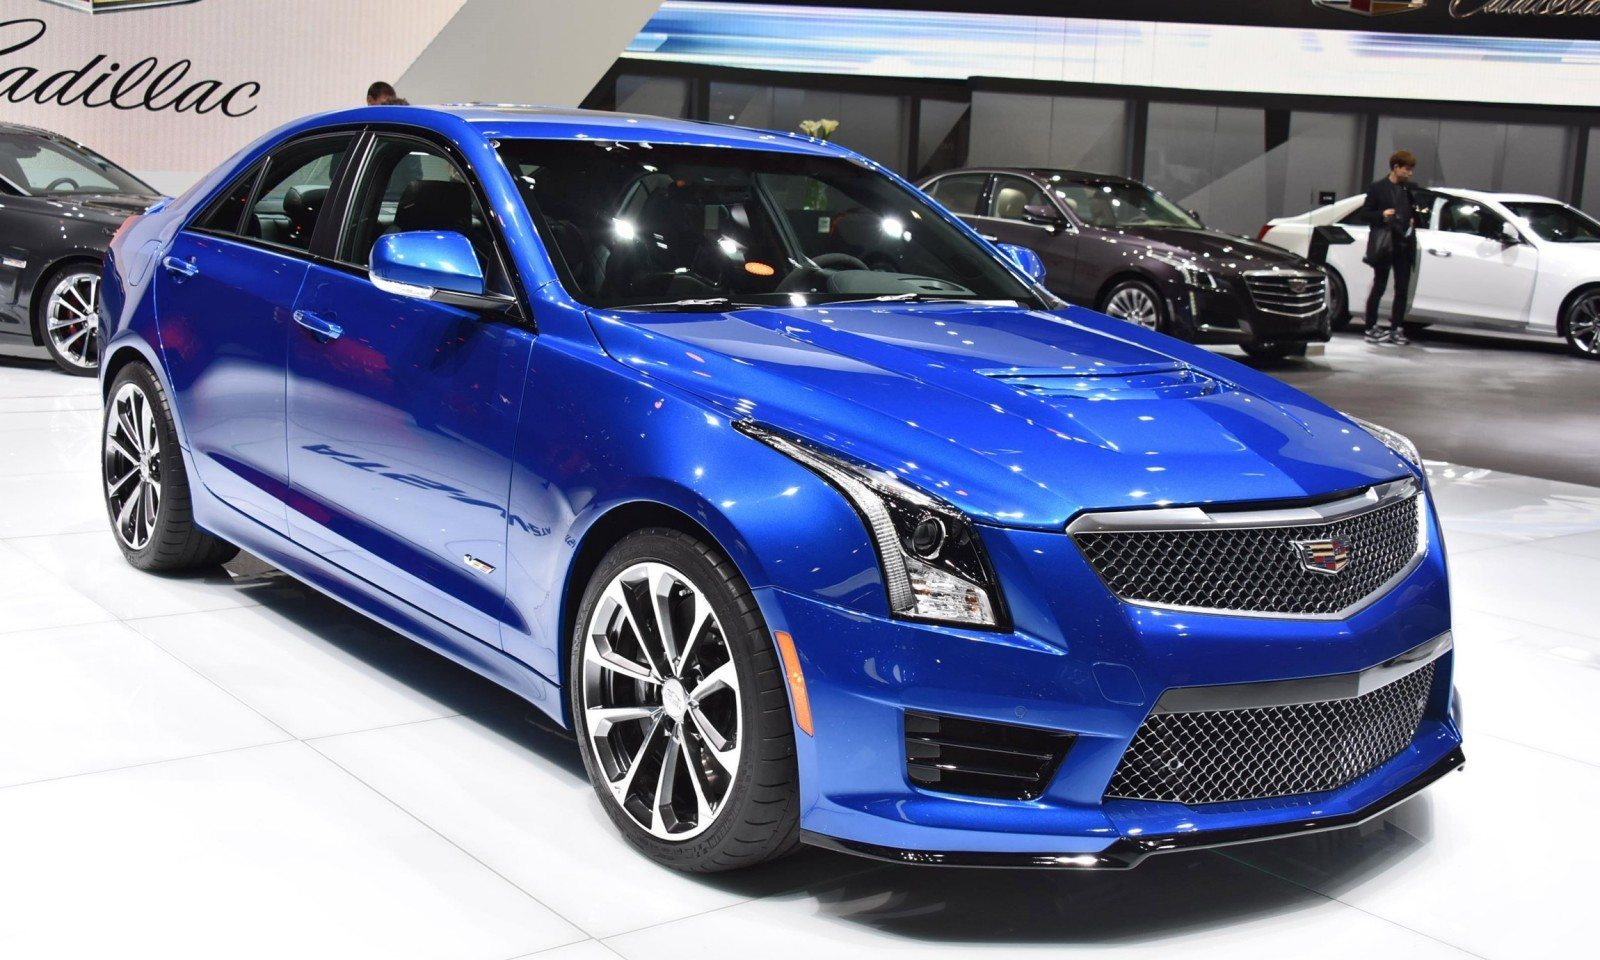 Ats Vs Cts >> Geneva 2015 Gallery - Cadillac ATS-V and CTS-V + Euro-Spec ...